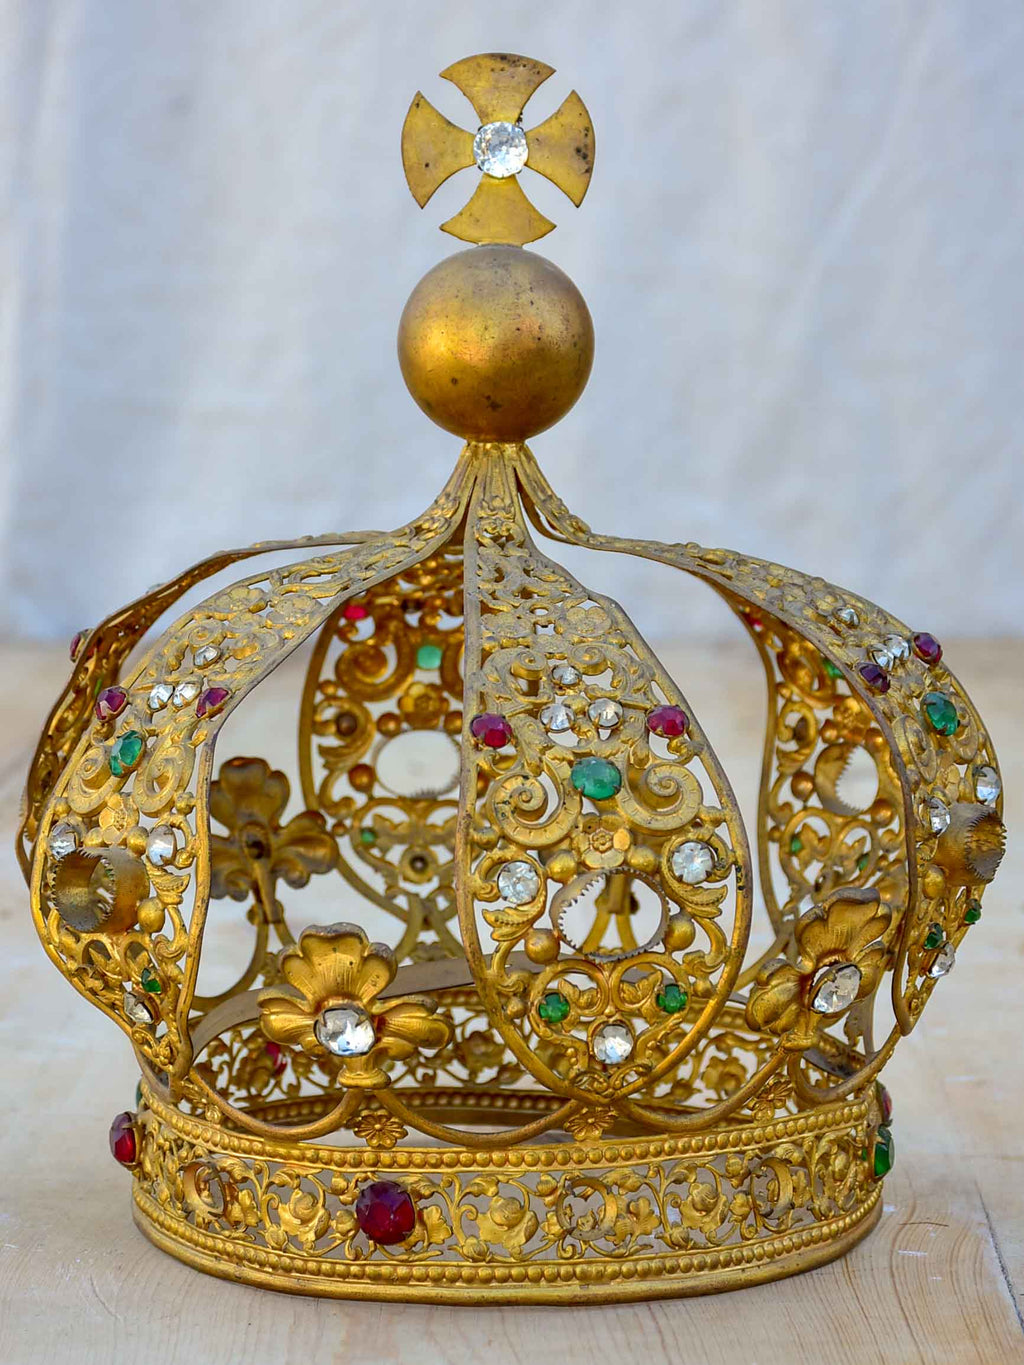 Antique French saint's crown from a church